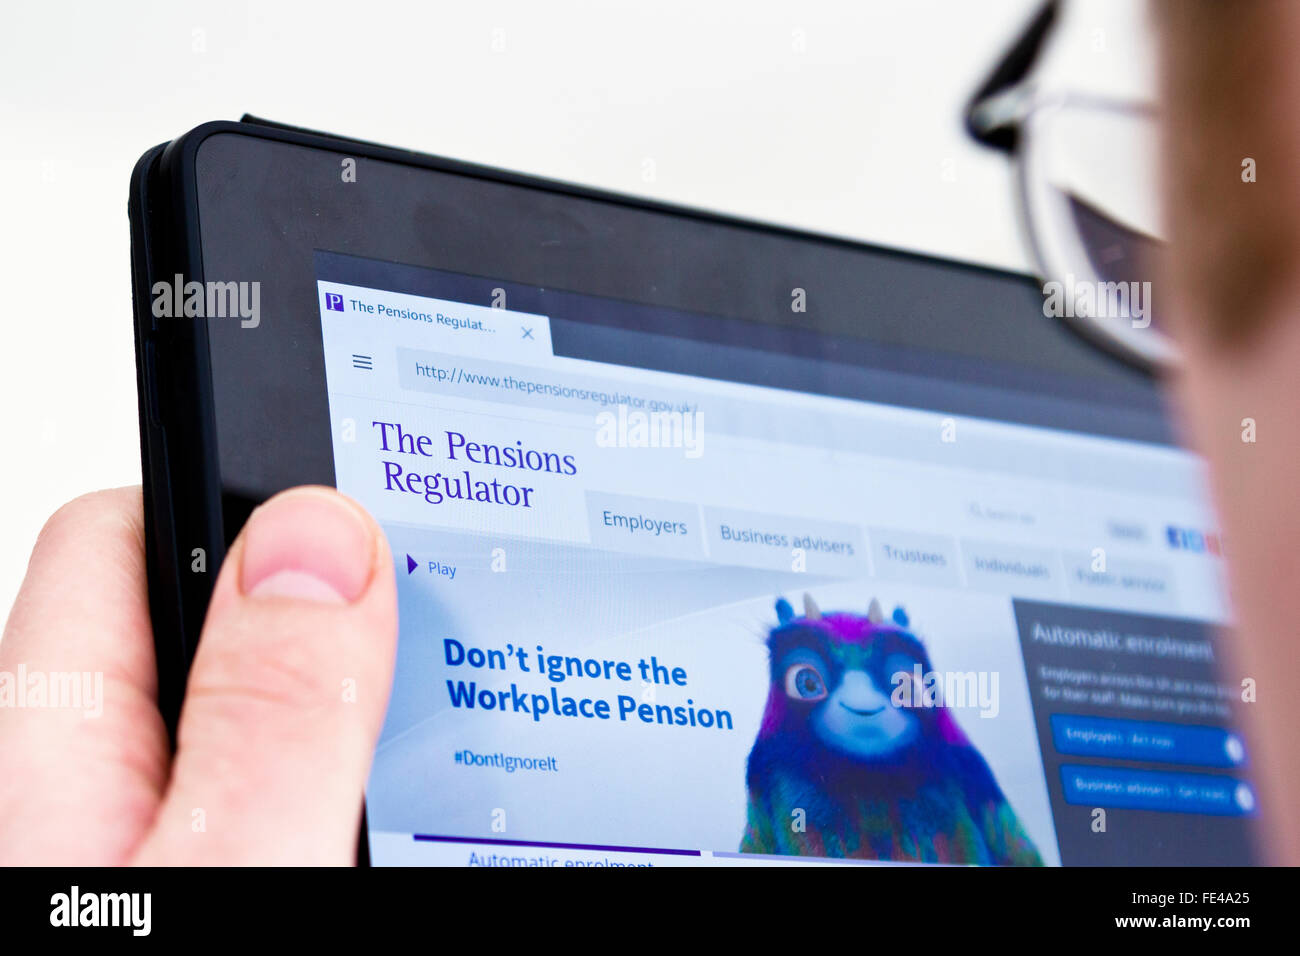 Employer looking at information about the UK government's Pensions Regulator - Stock Image